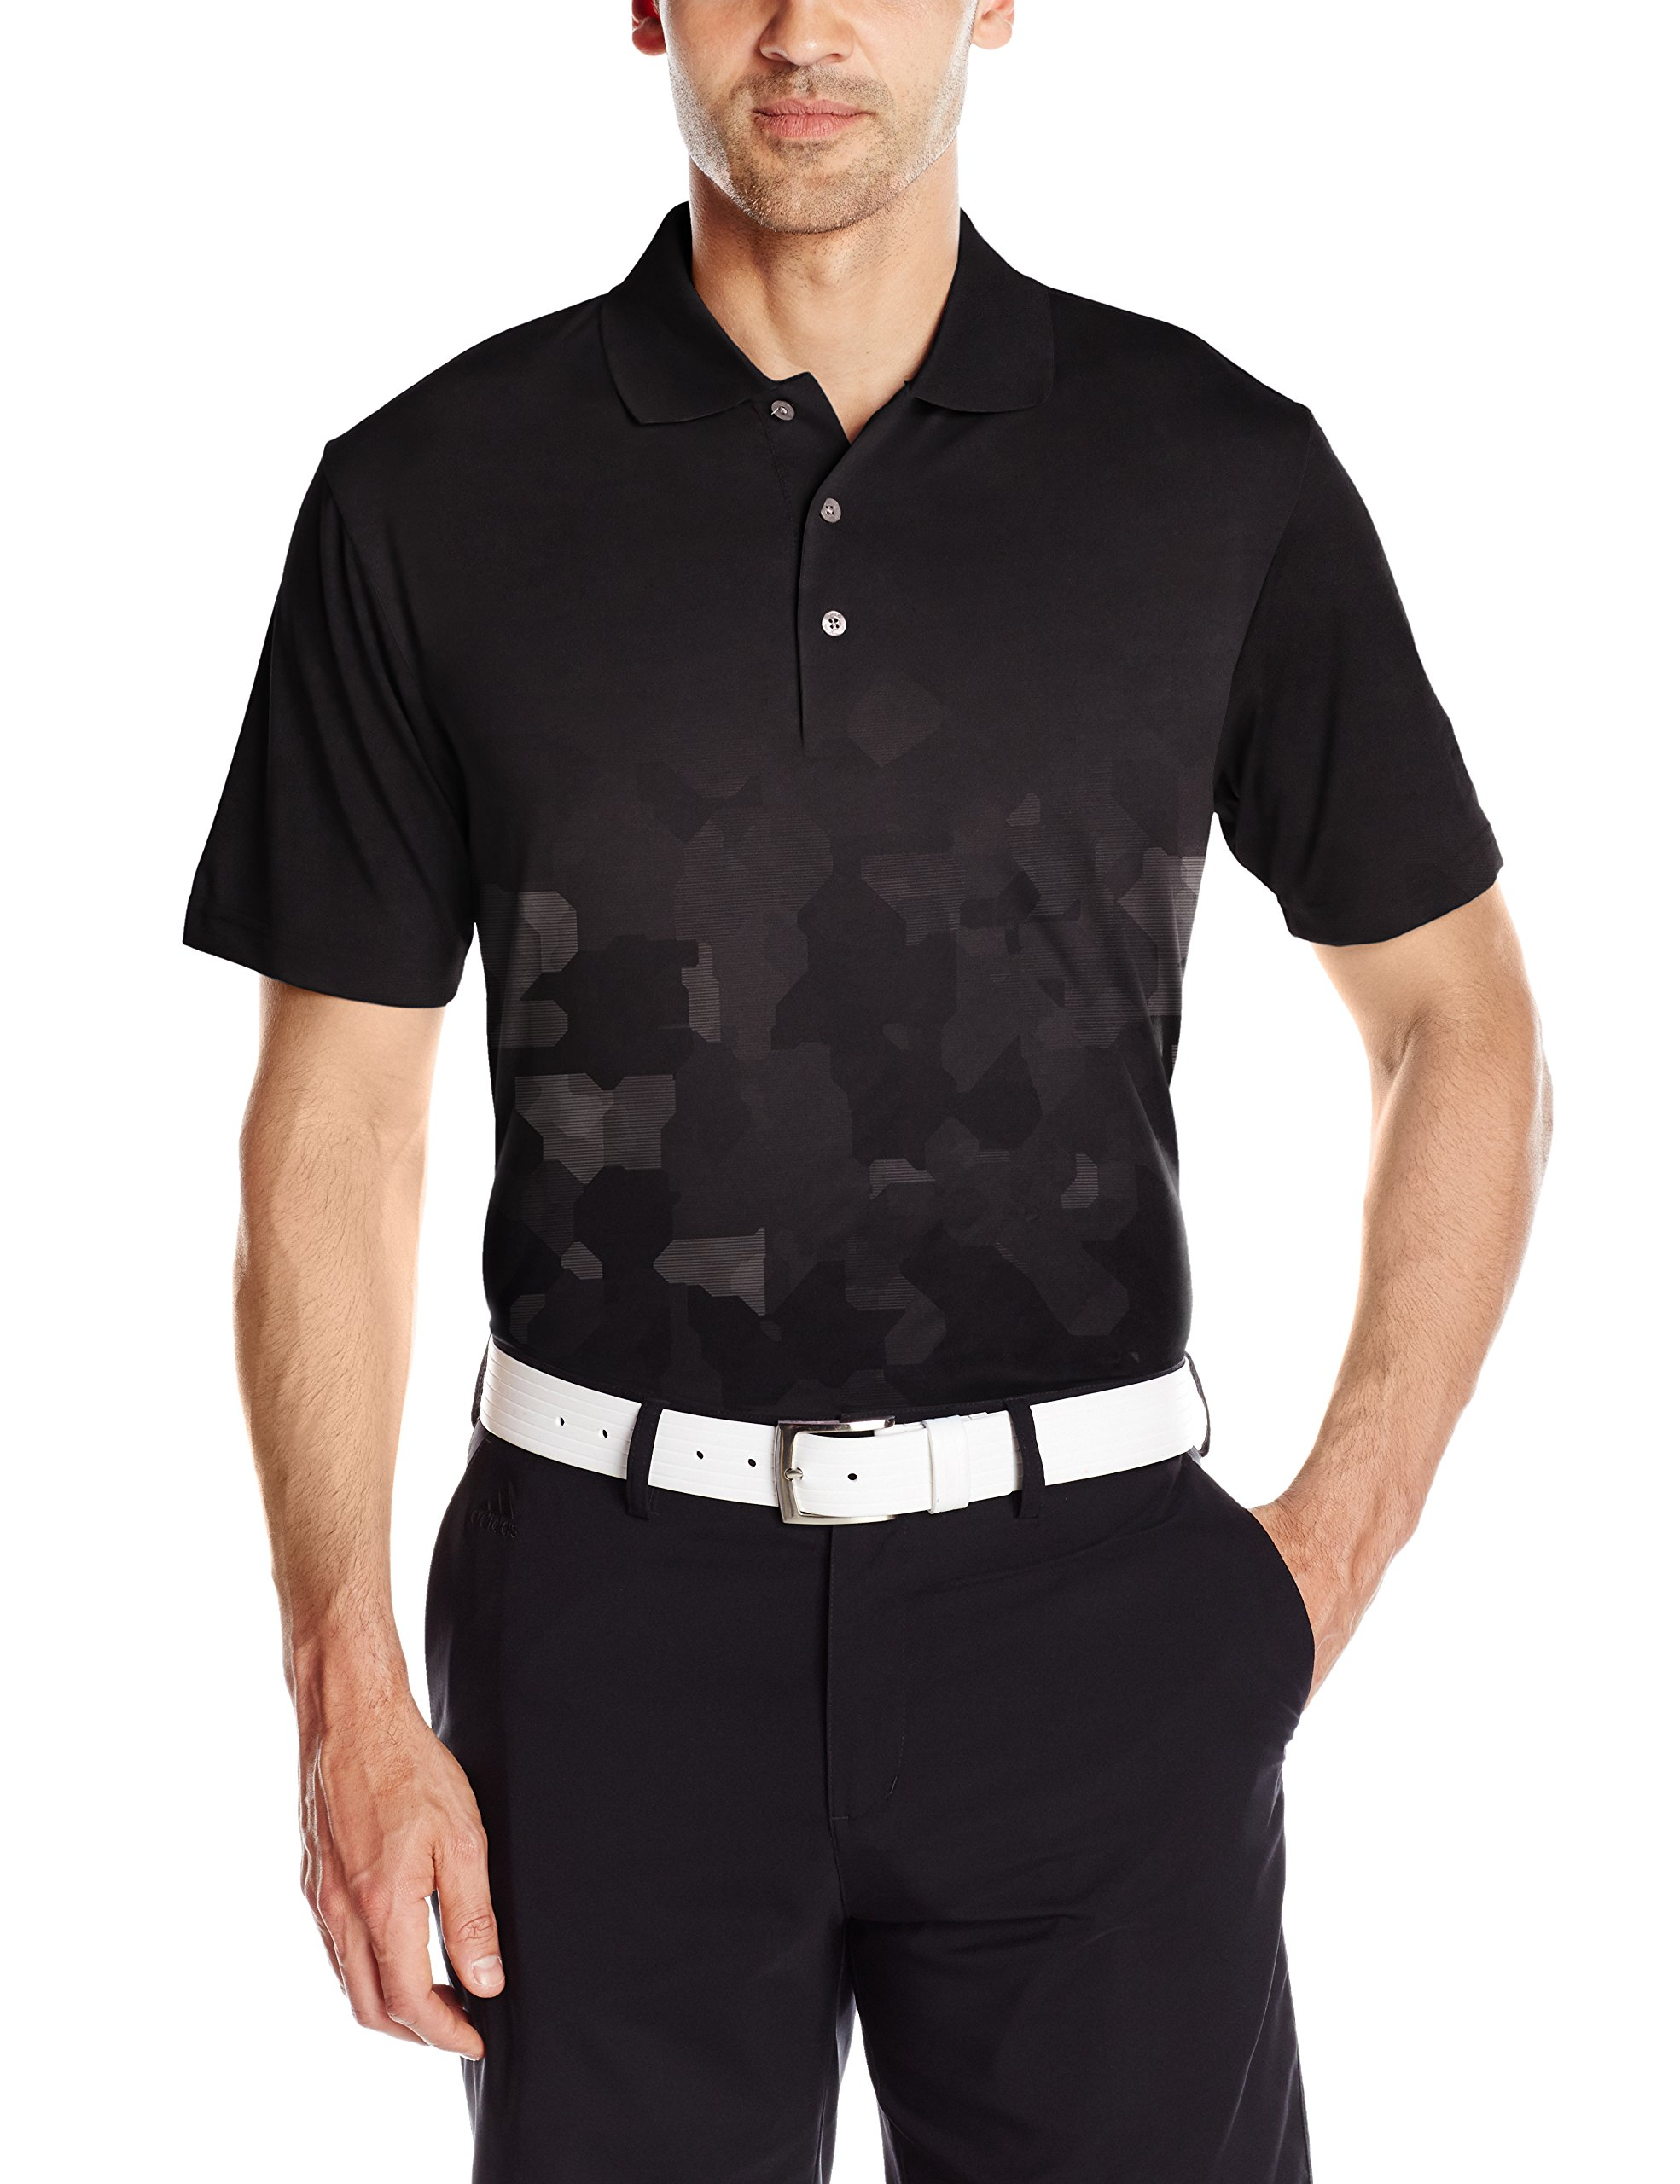 238f656604 Cheap Tour Polo, find Tour Polo deals on line at Alibaba.com